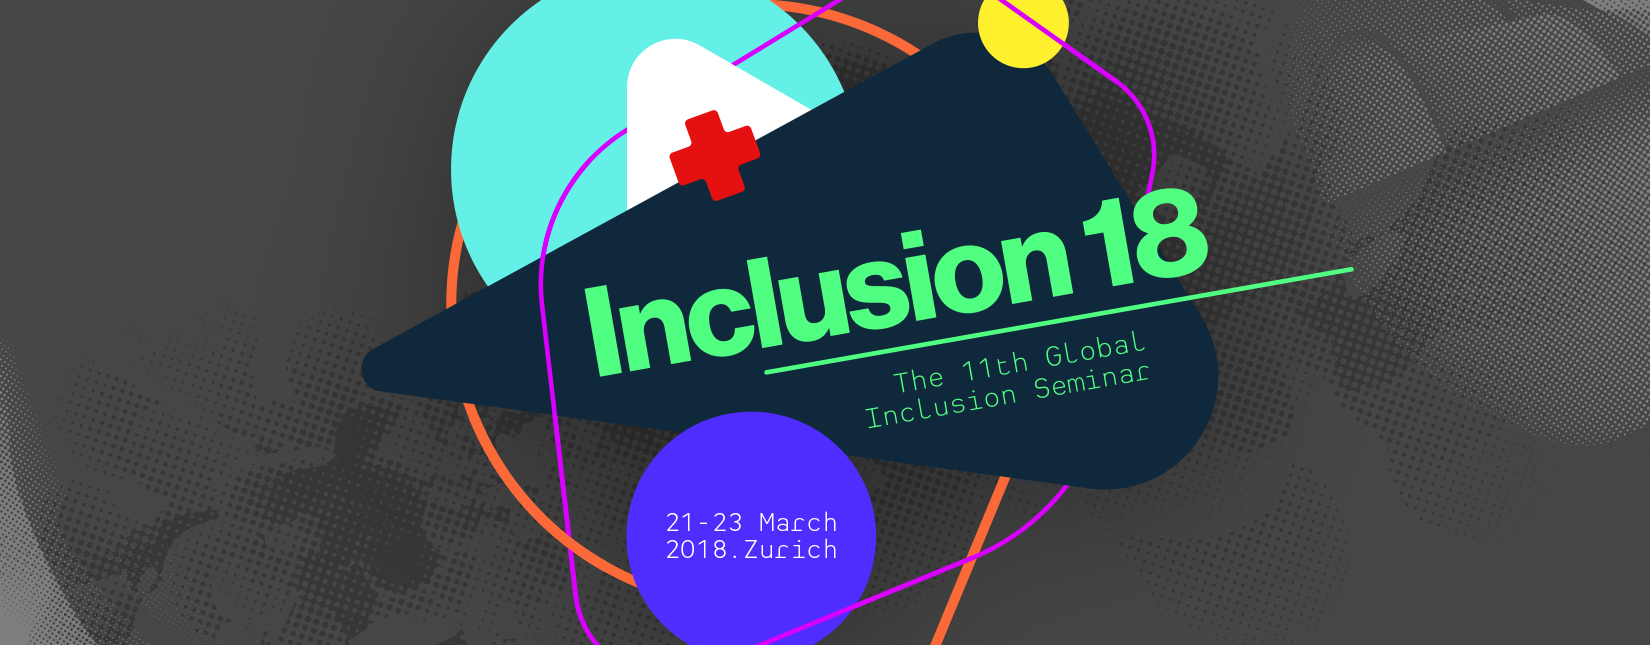 Inclusion18.png